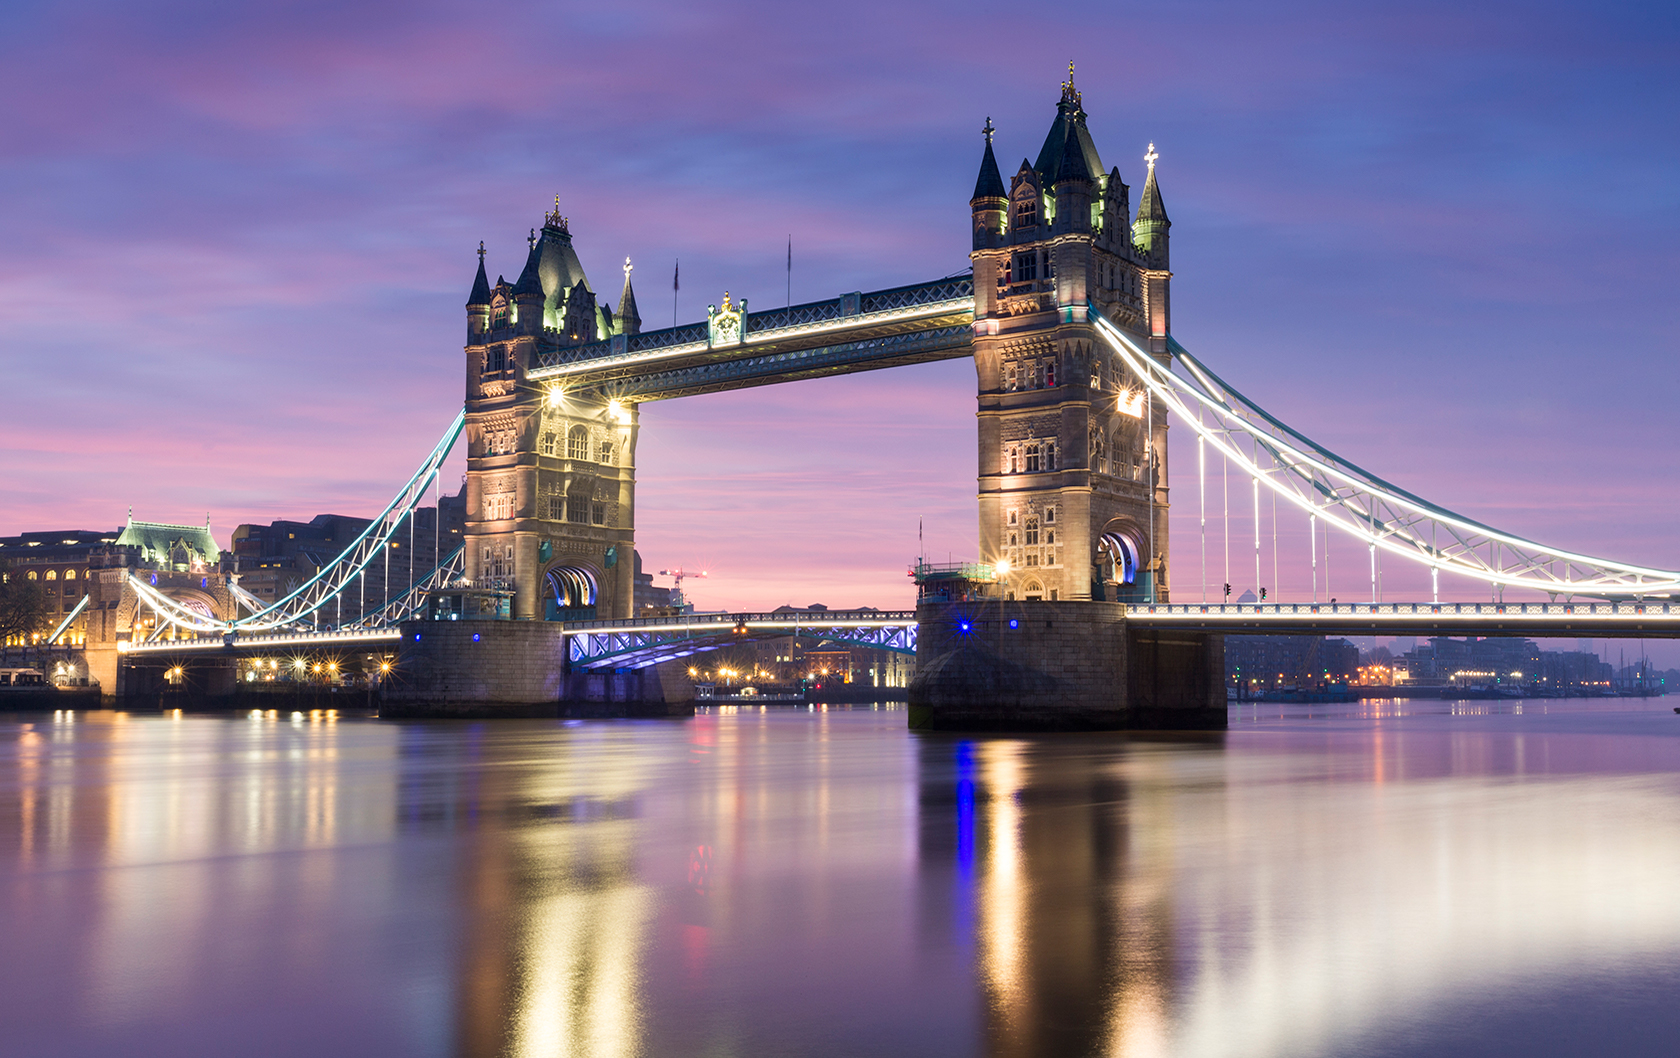 Happy Valentine's Day: Romantic Spots in London